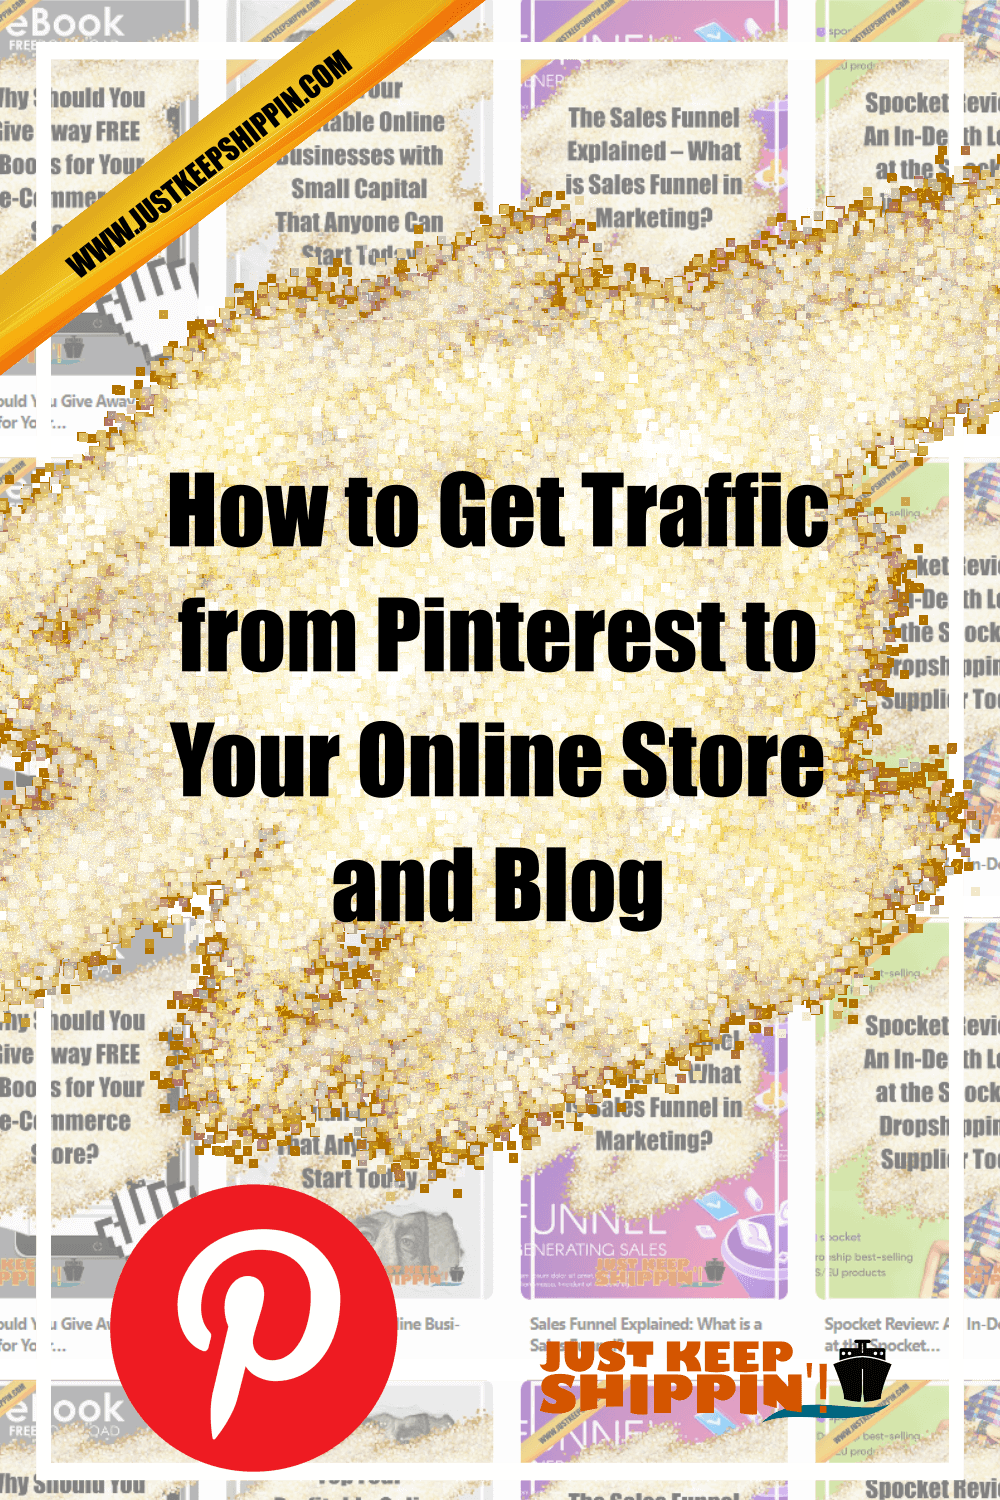 How to Get Traffic from Pinterest to Your Online Store and Blog